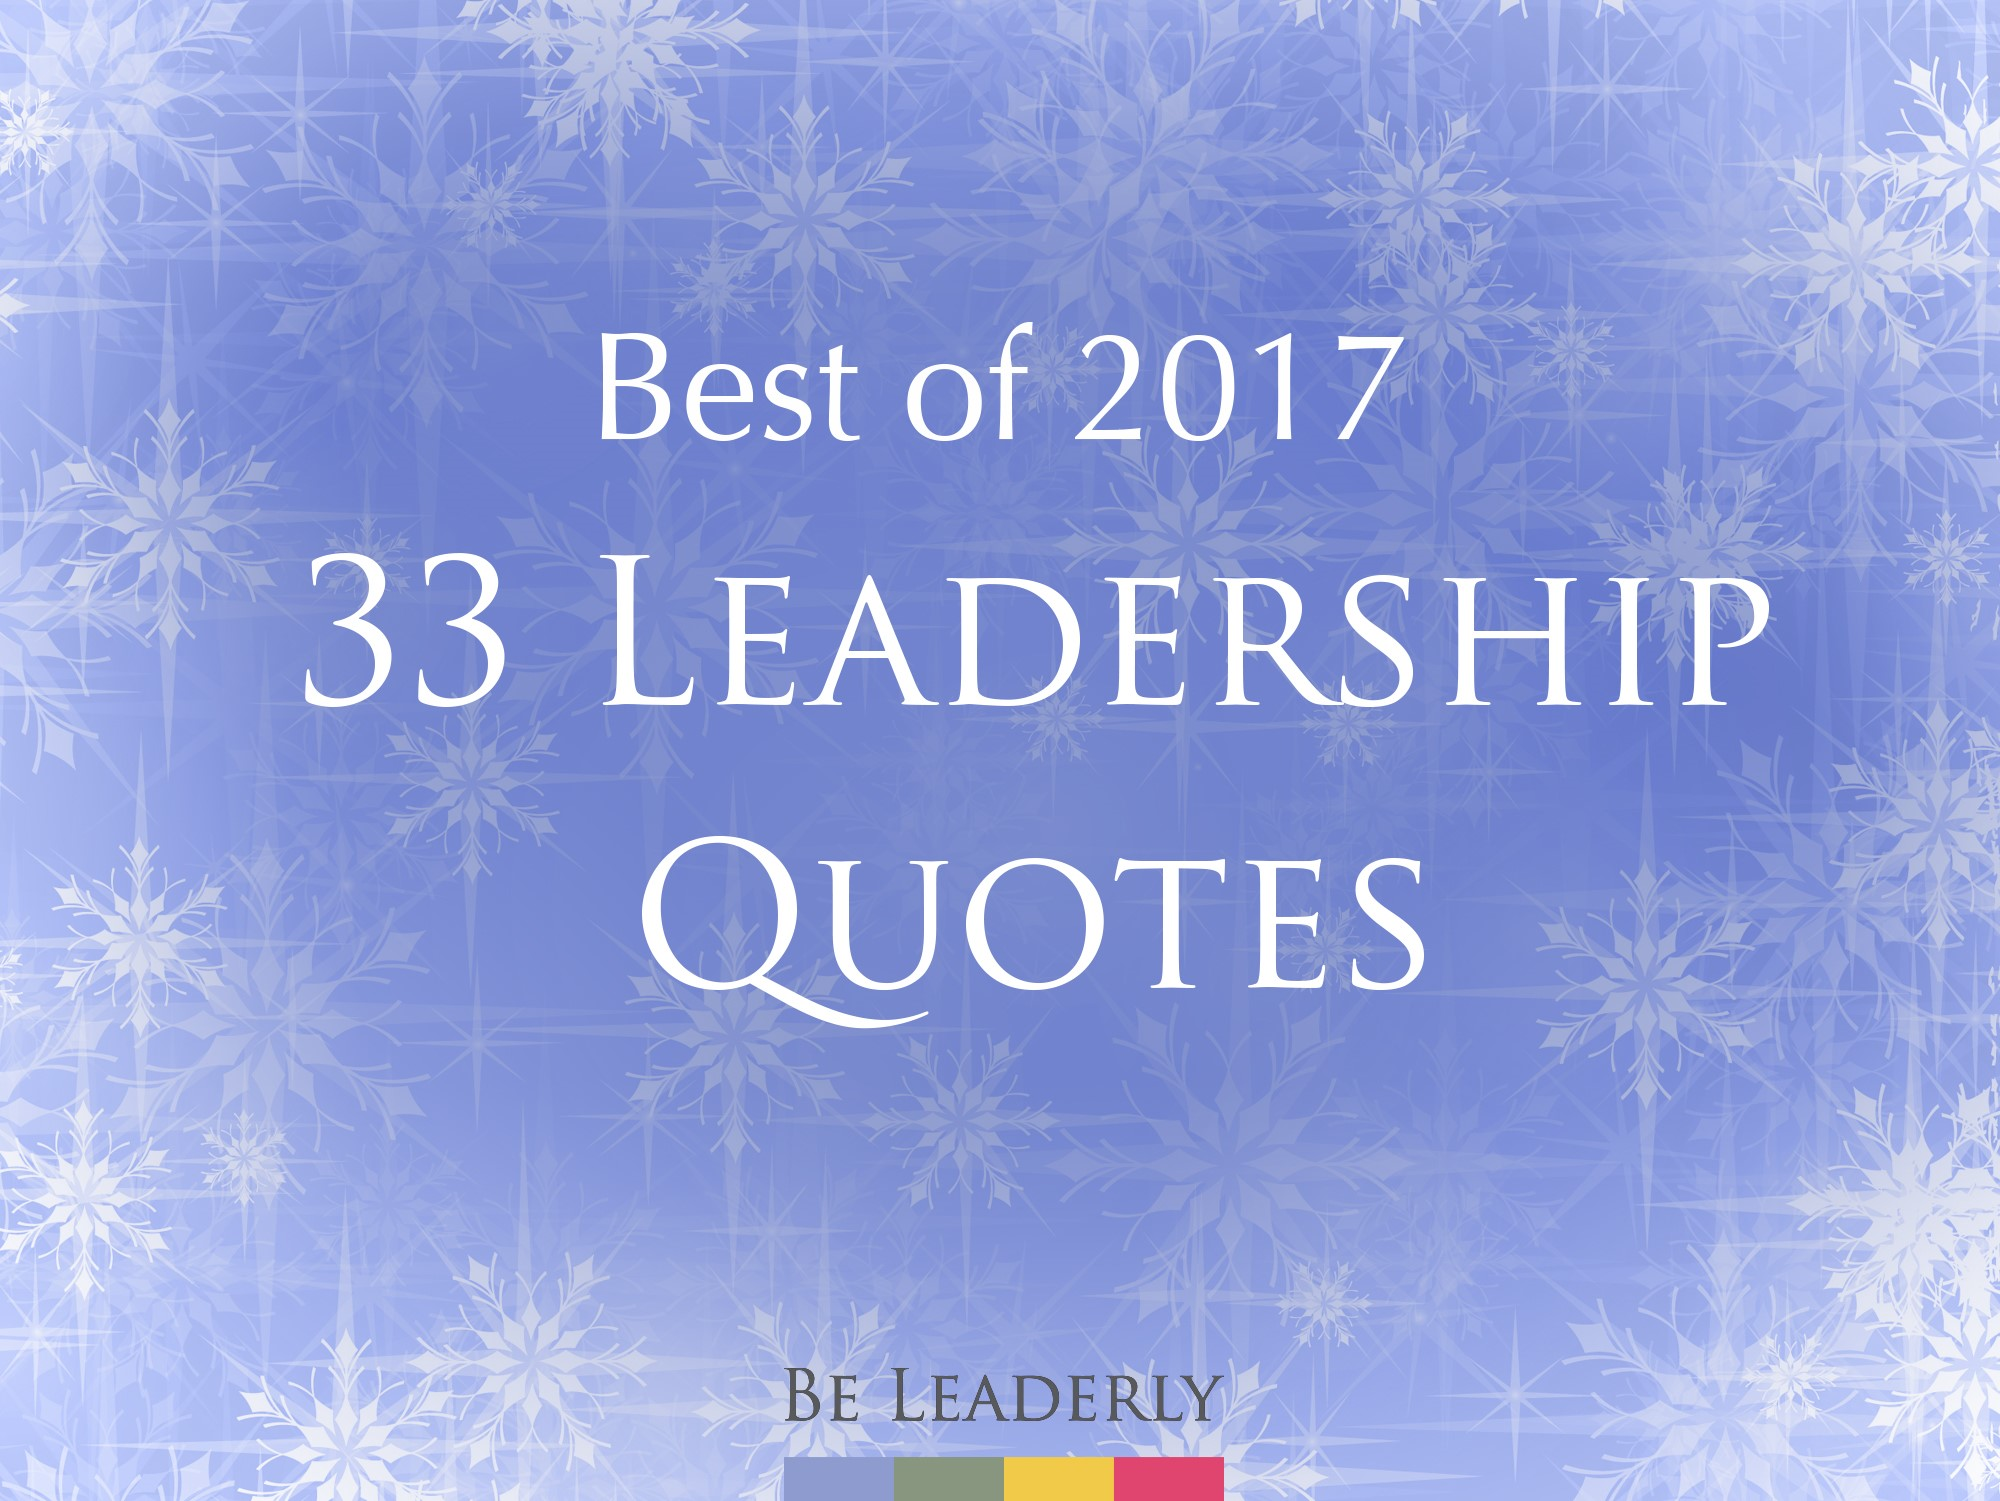 Our Best of 2017 – 33 Leadership Quotes (Slideshow)